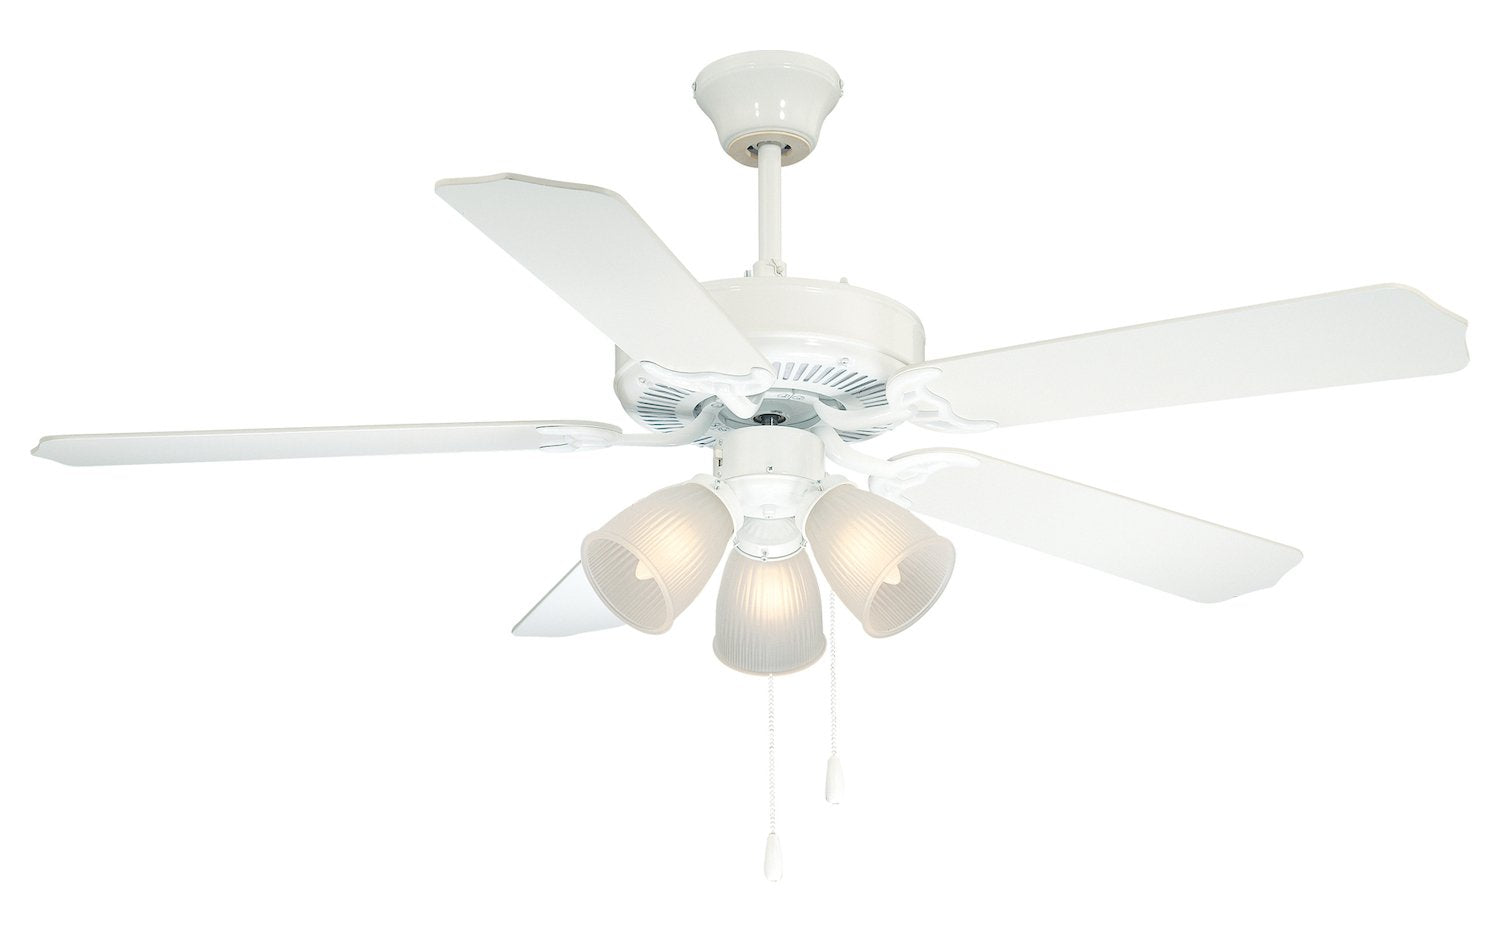 Three Light White Satin White Frosted Glass Ceiling Fan - Style: 7292866